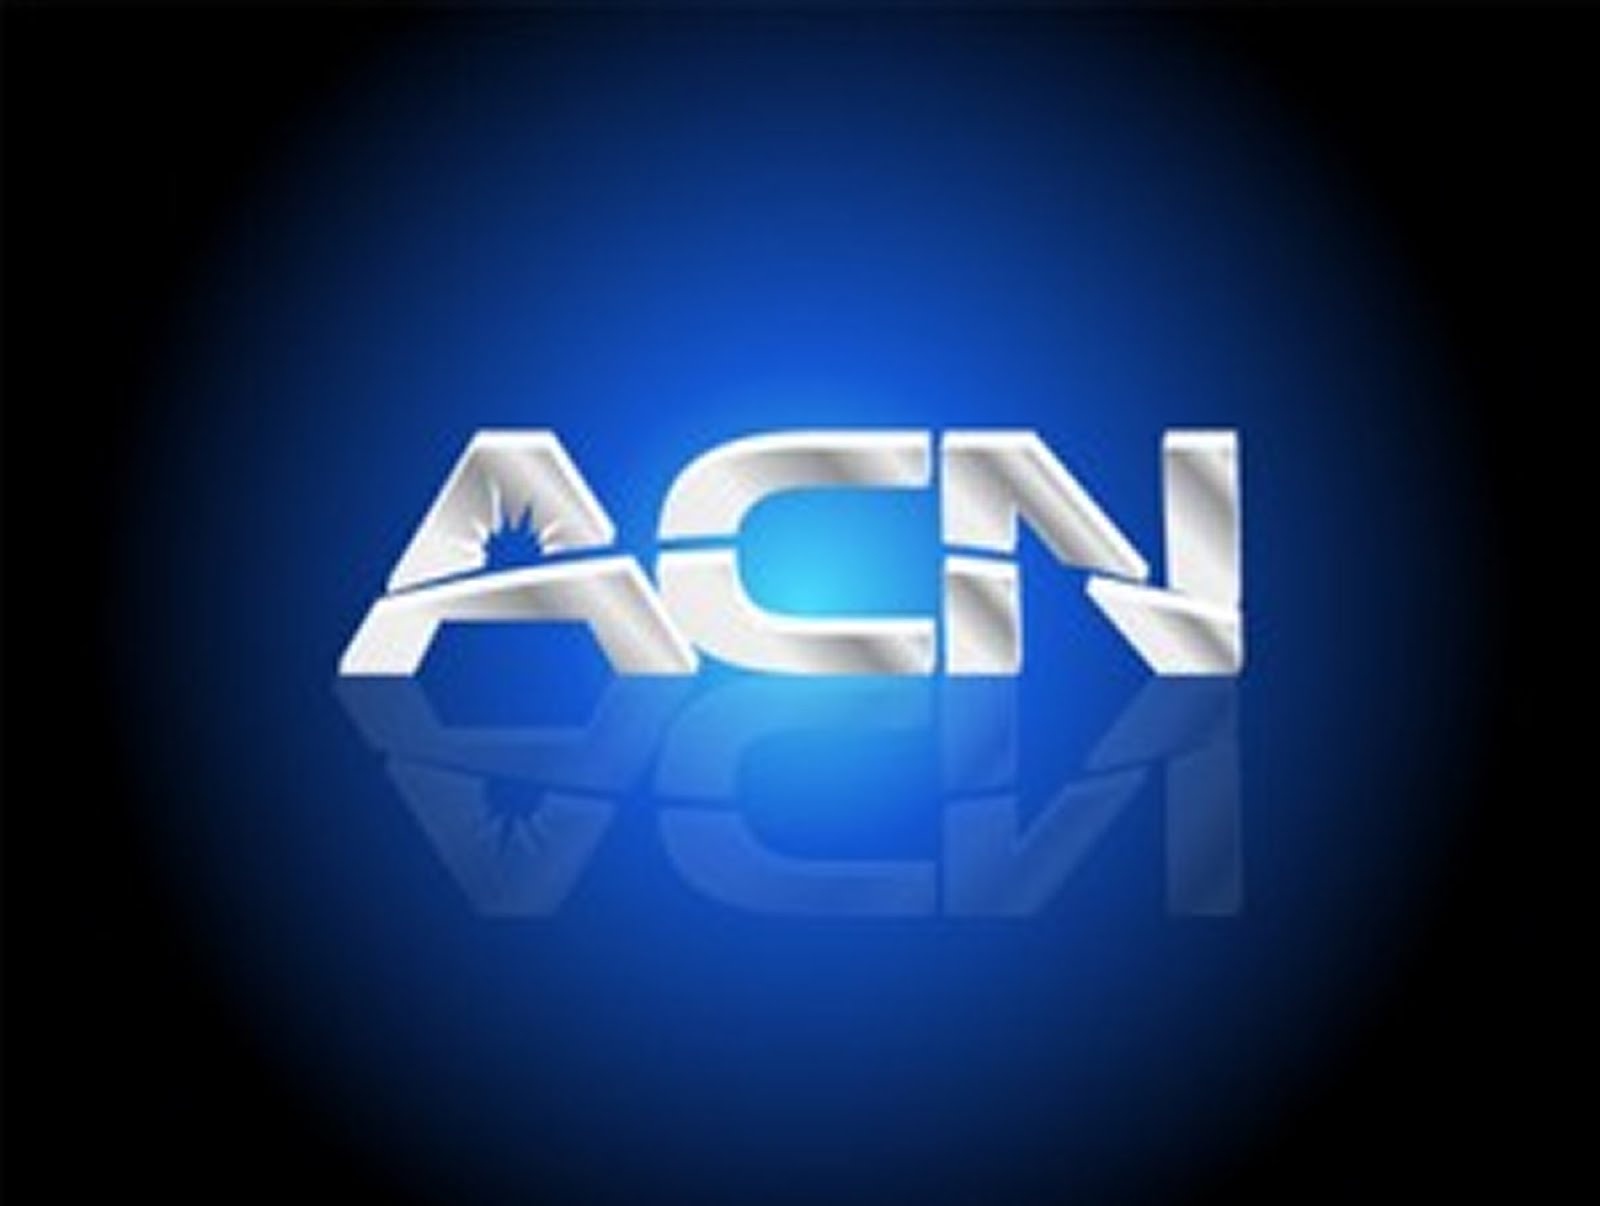 Acnibo Beginning With Acn